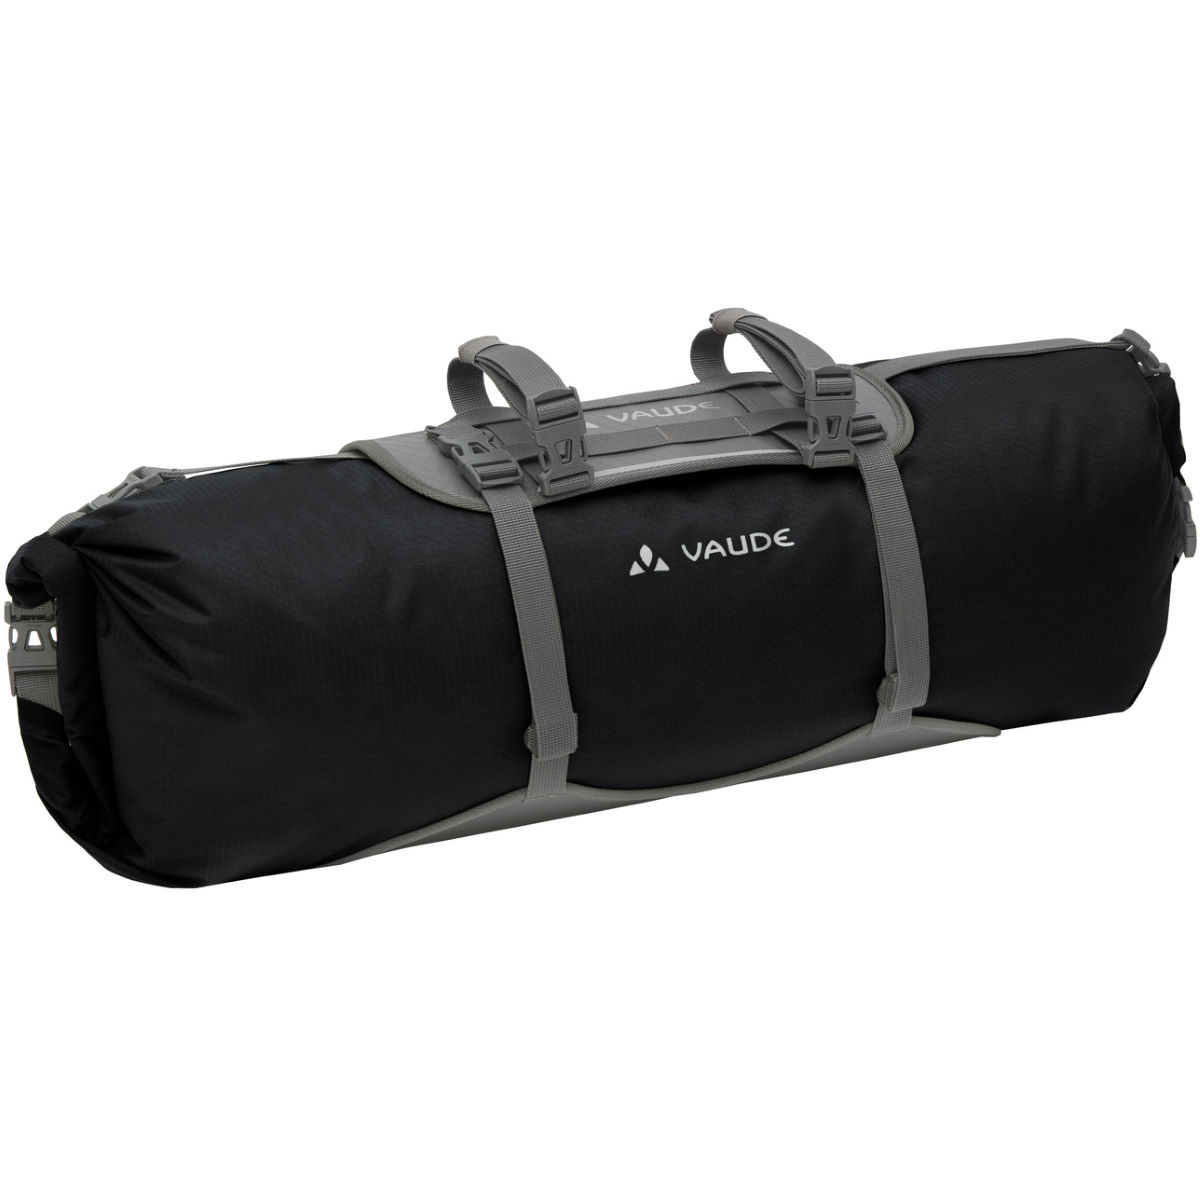 Vaude Trailfront Bike Bag   Pannier Bags